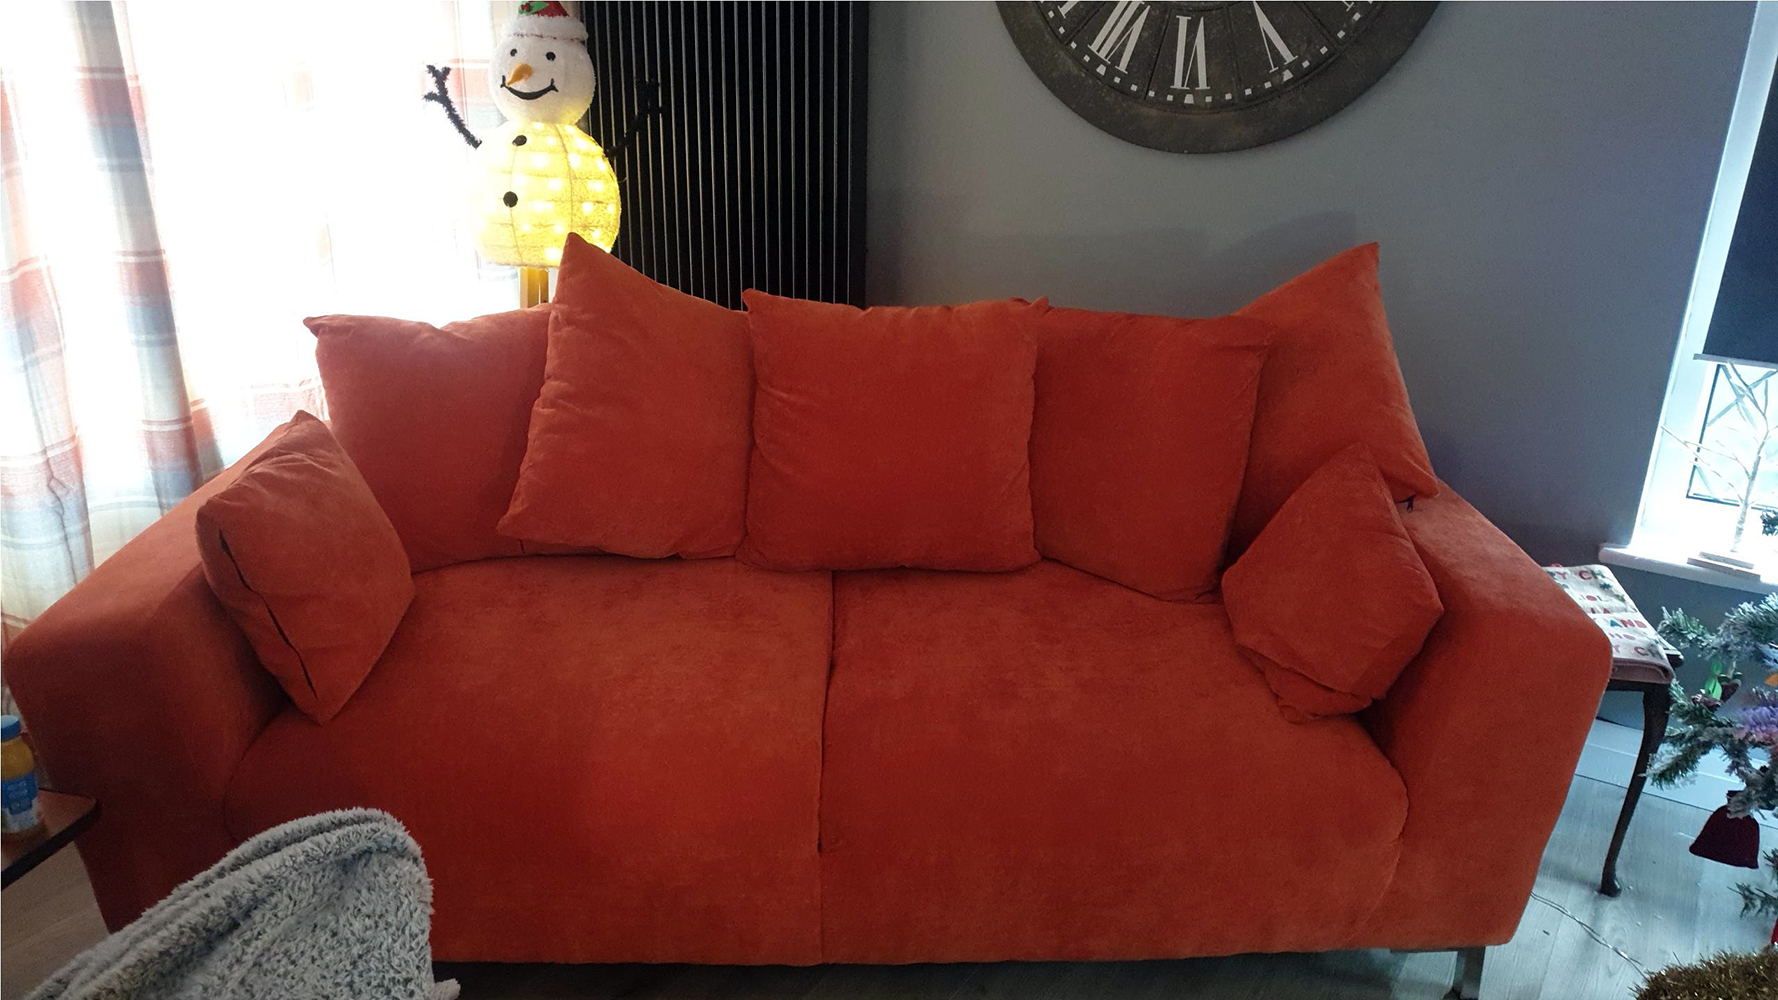 Orange Stone sofa on metal legs